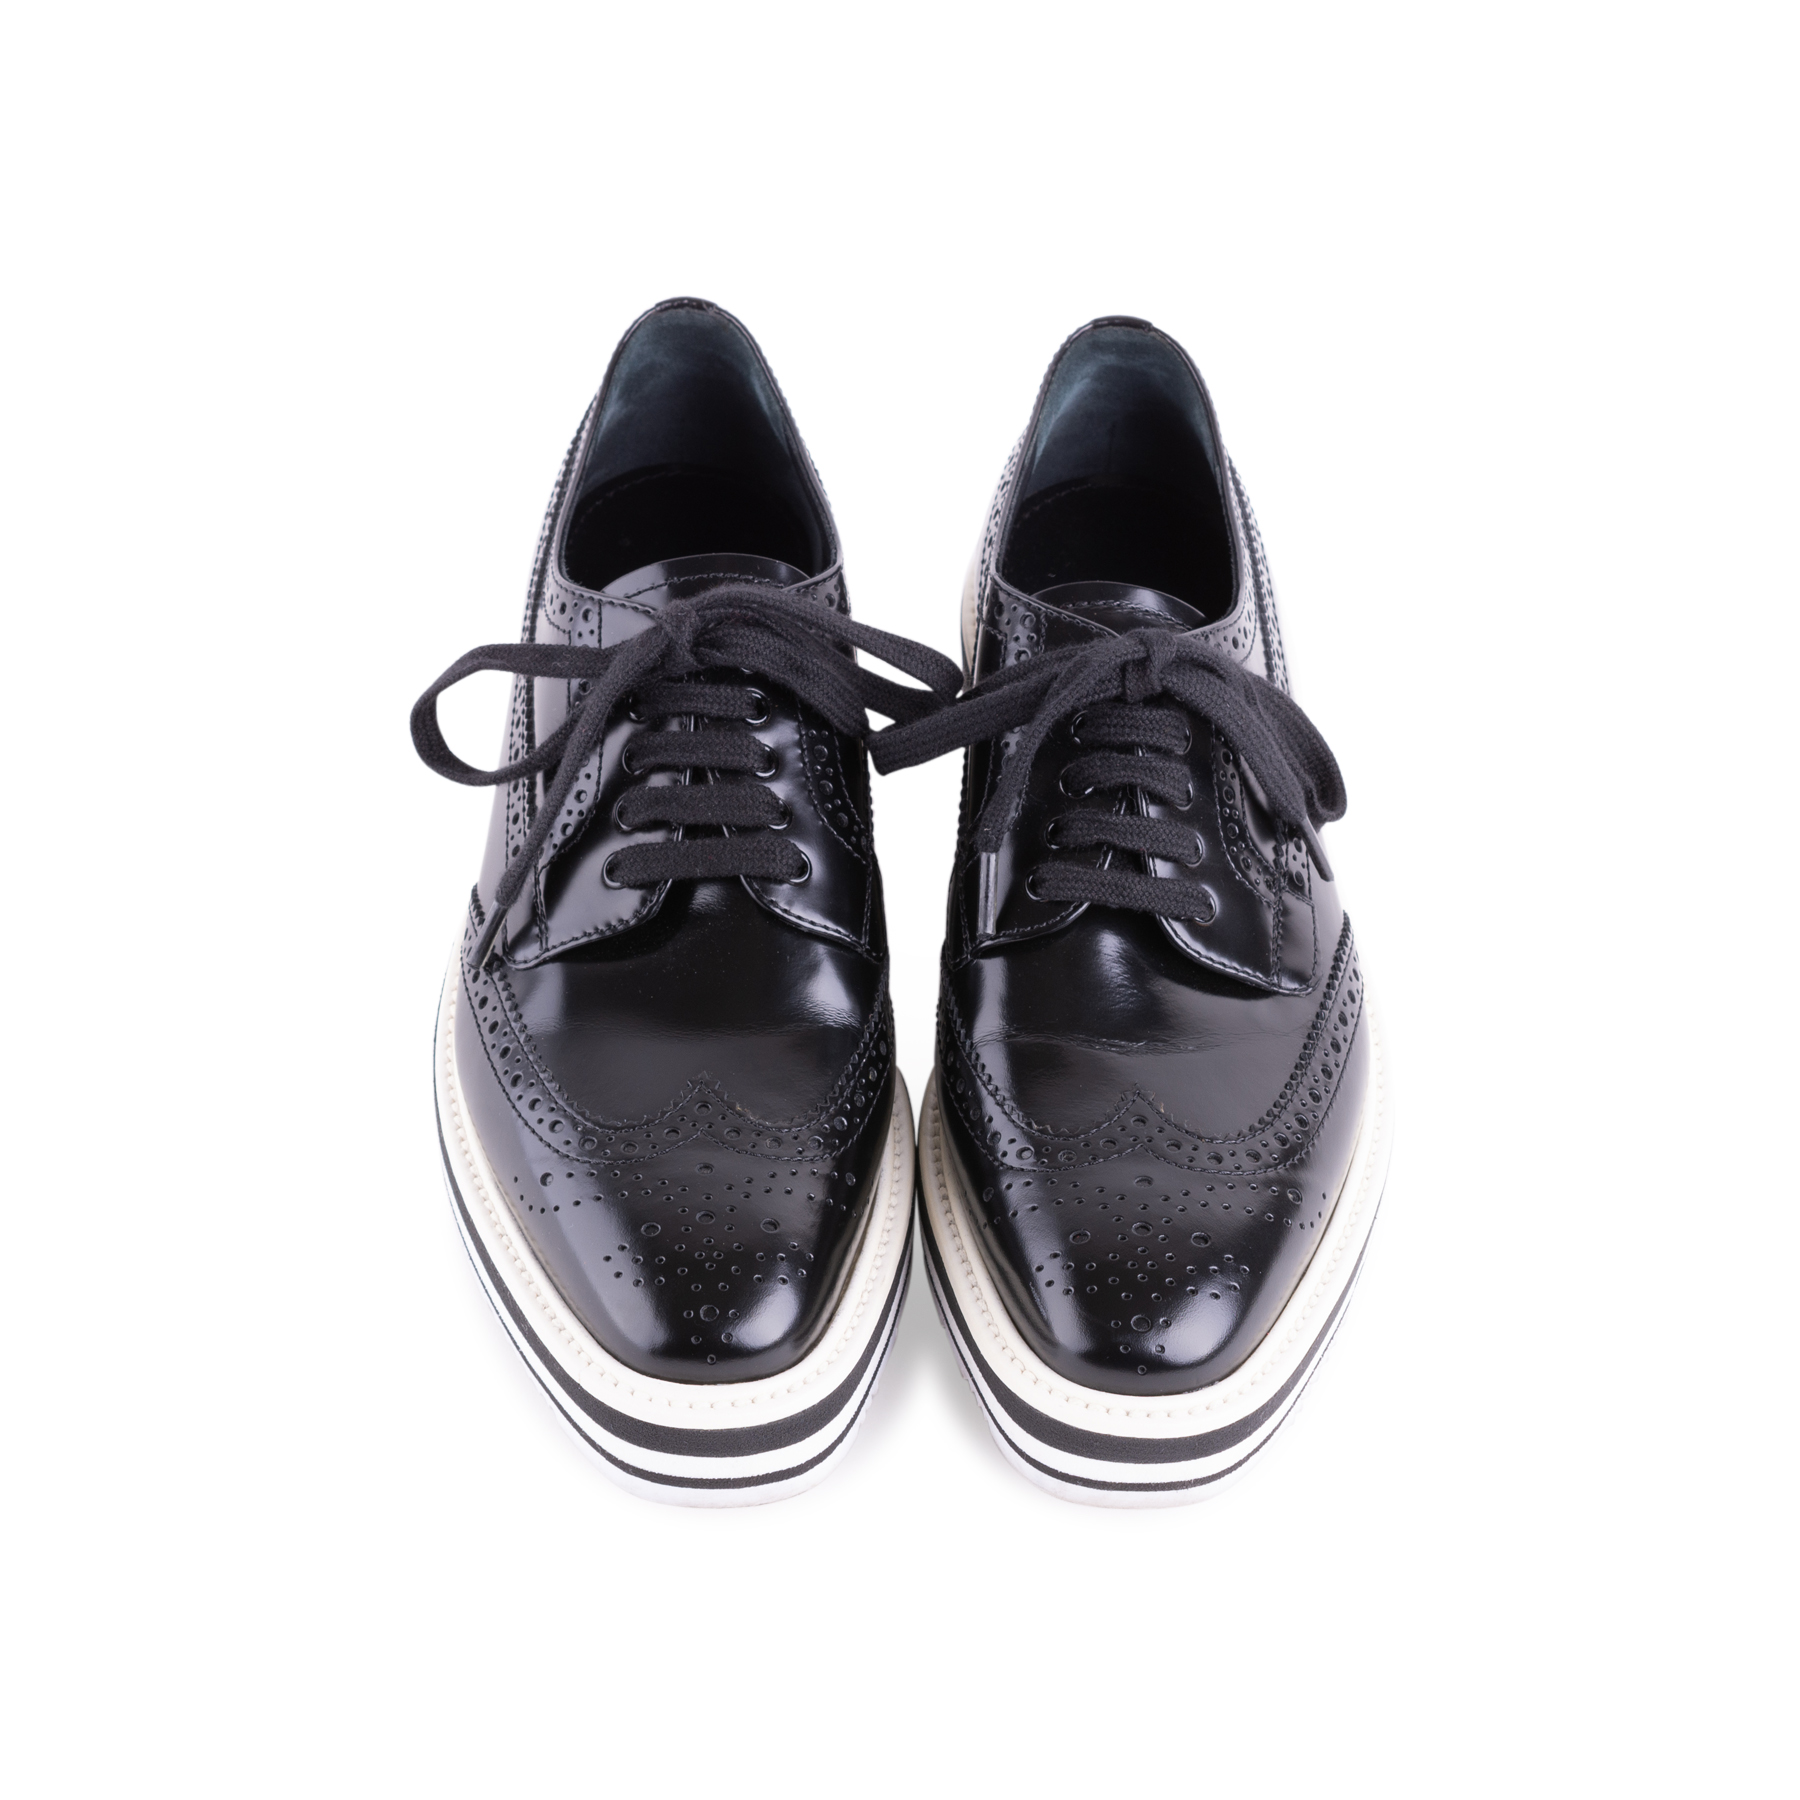 b7899e03a758 Authentic Second Hand Prada Leather Platform Brogues (PSS-607-00001 ...